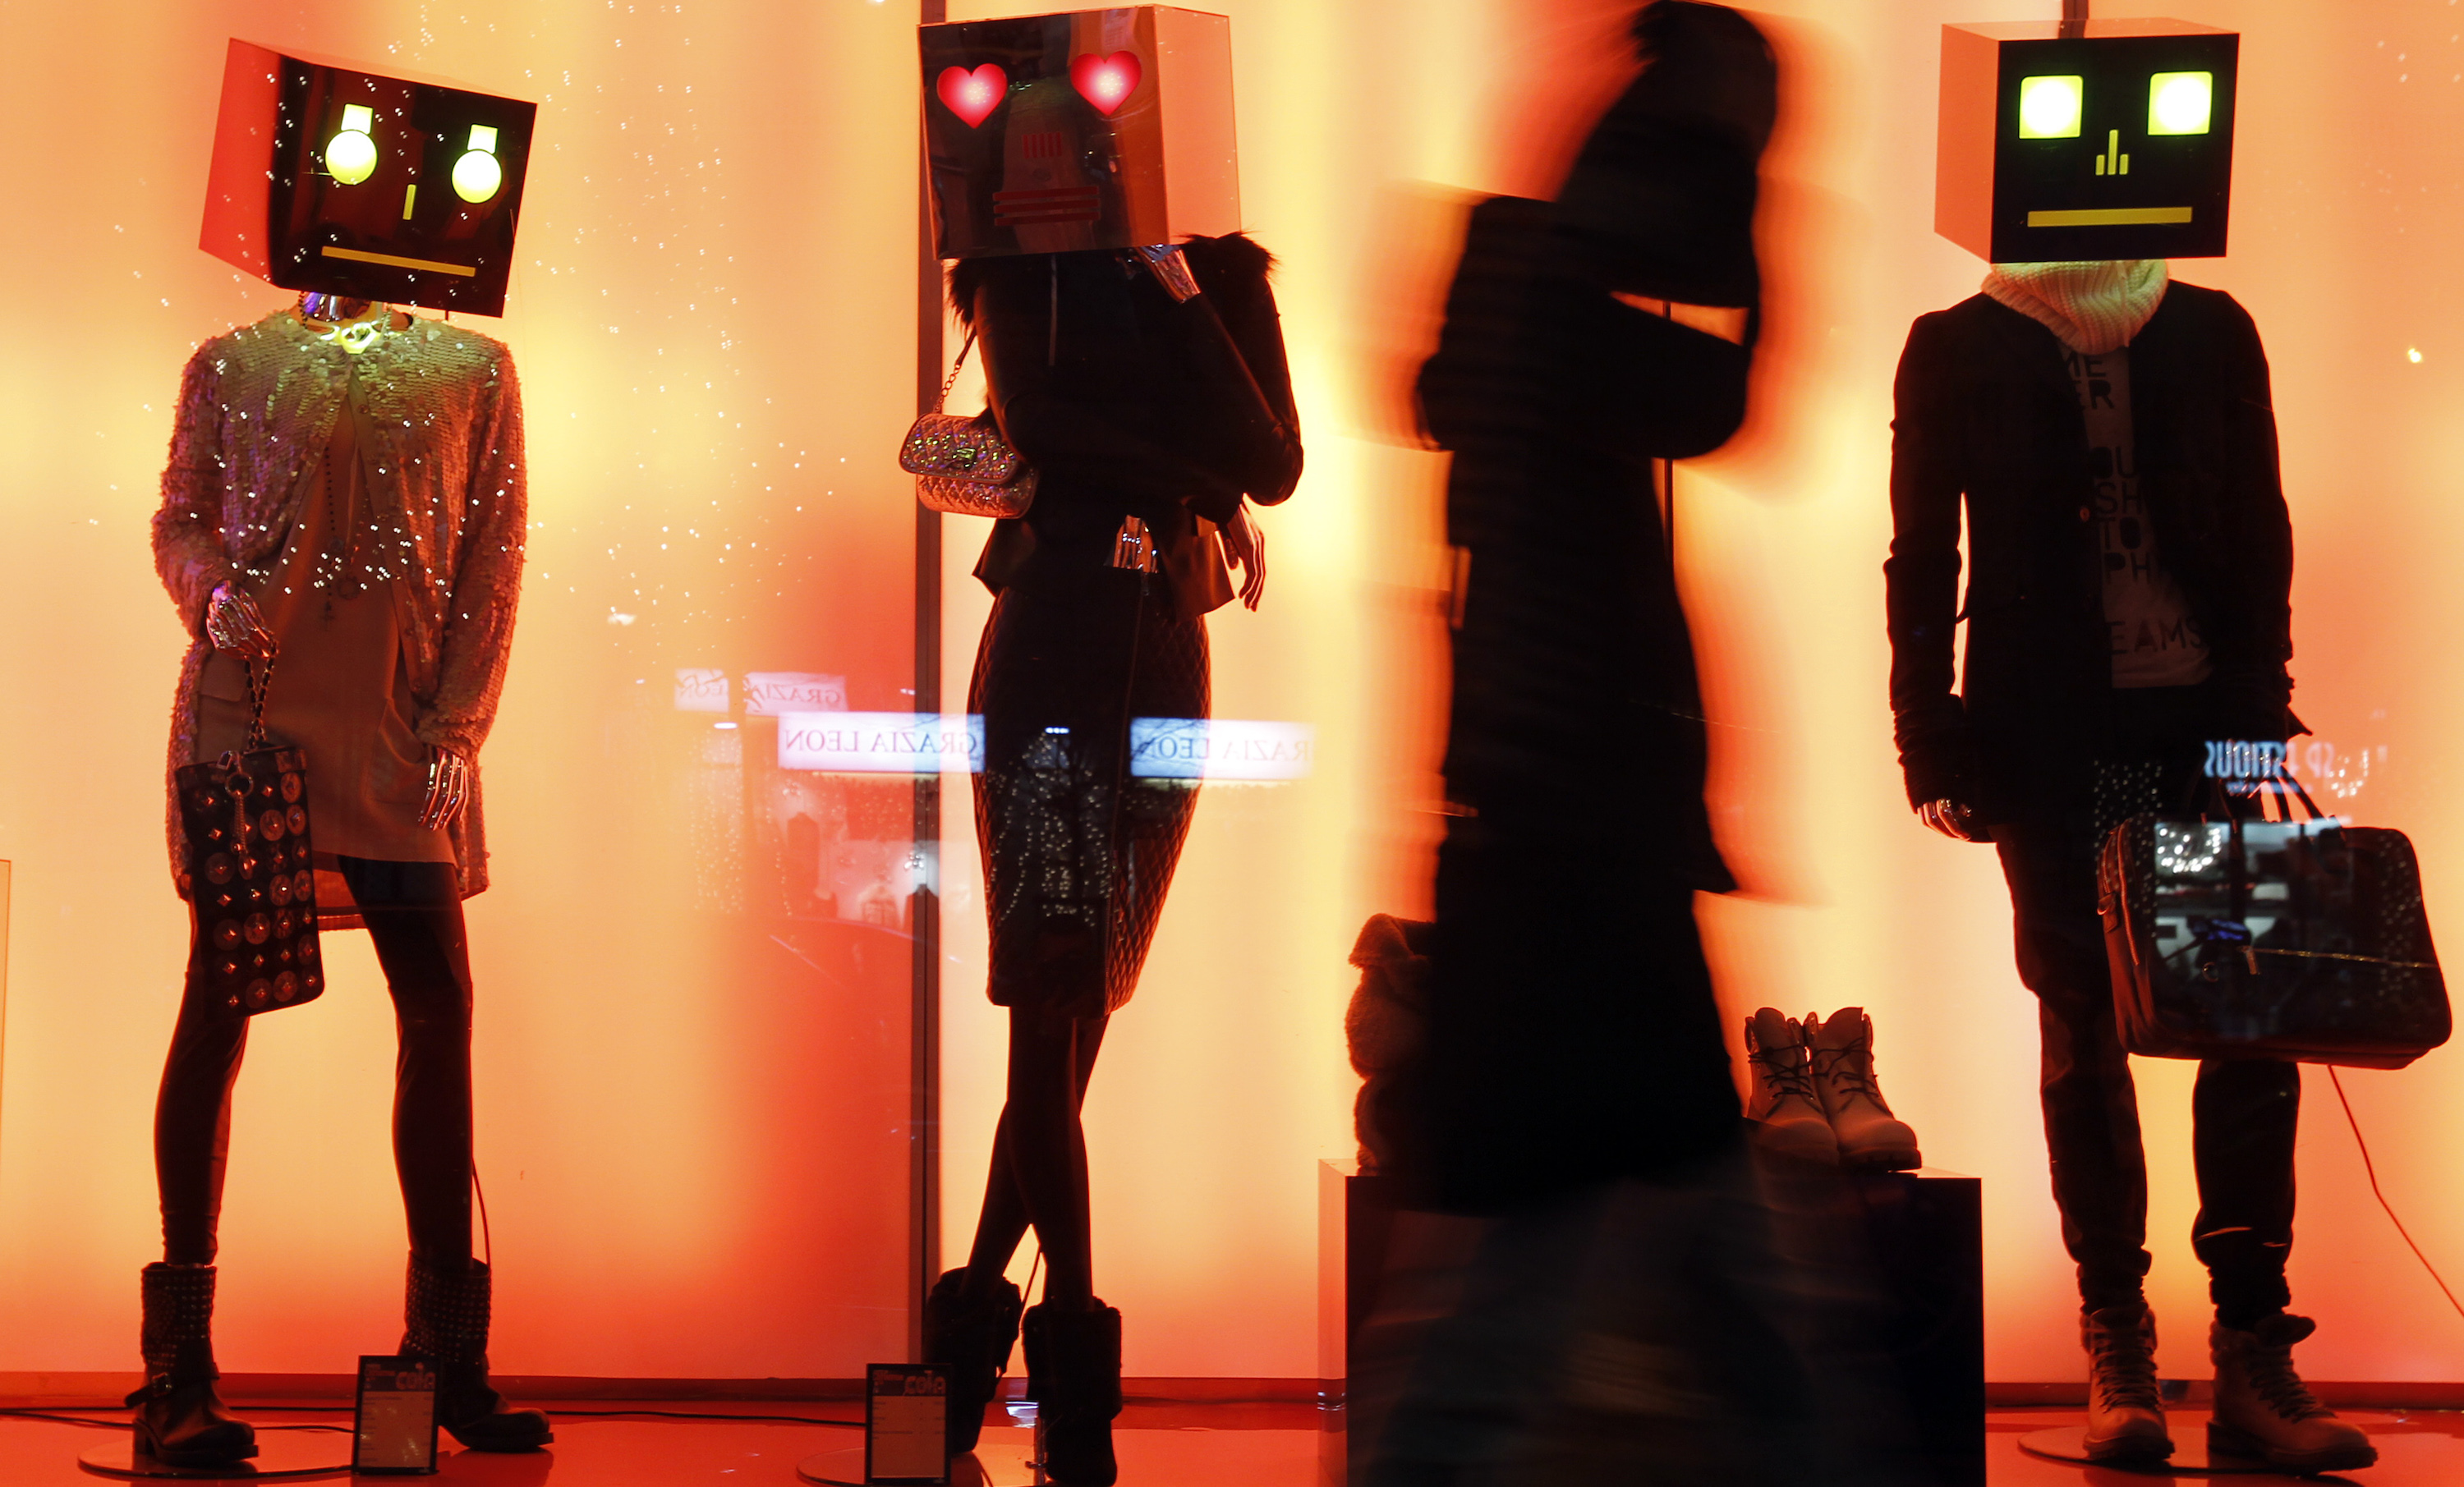 A person walks past a shop window display in downtown Milan December 8, 2011. European Union leaders gathered on Thursday for a critical two-day summit focused on trying to find a solution to the euro zone debt crisis.  REUTERS/Alessandro Garofalo  (ITALY - Tags: SOCIETY BUSINESS) - RTR2V0KI